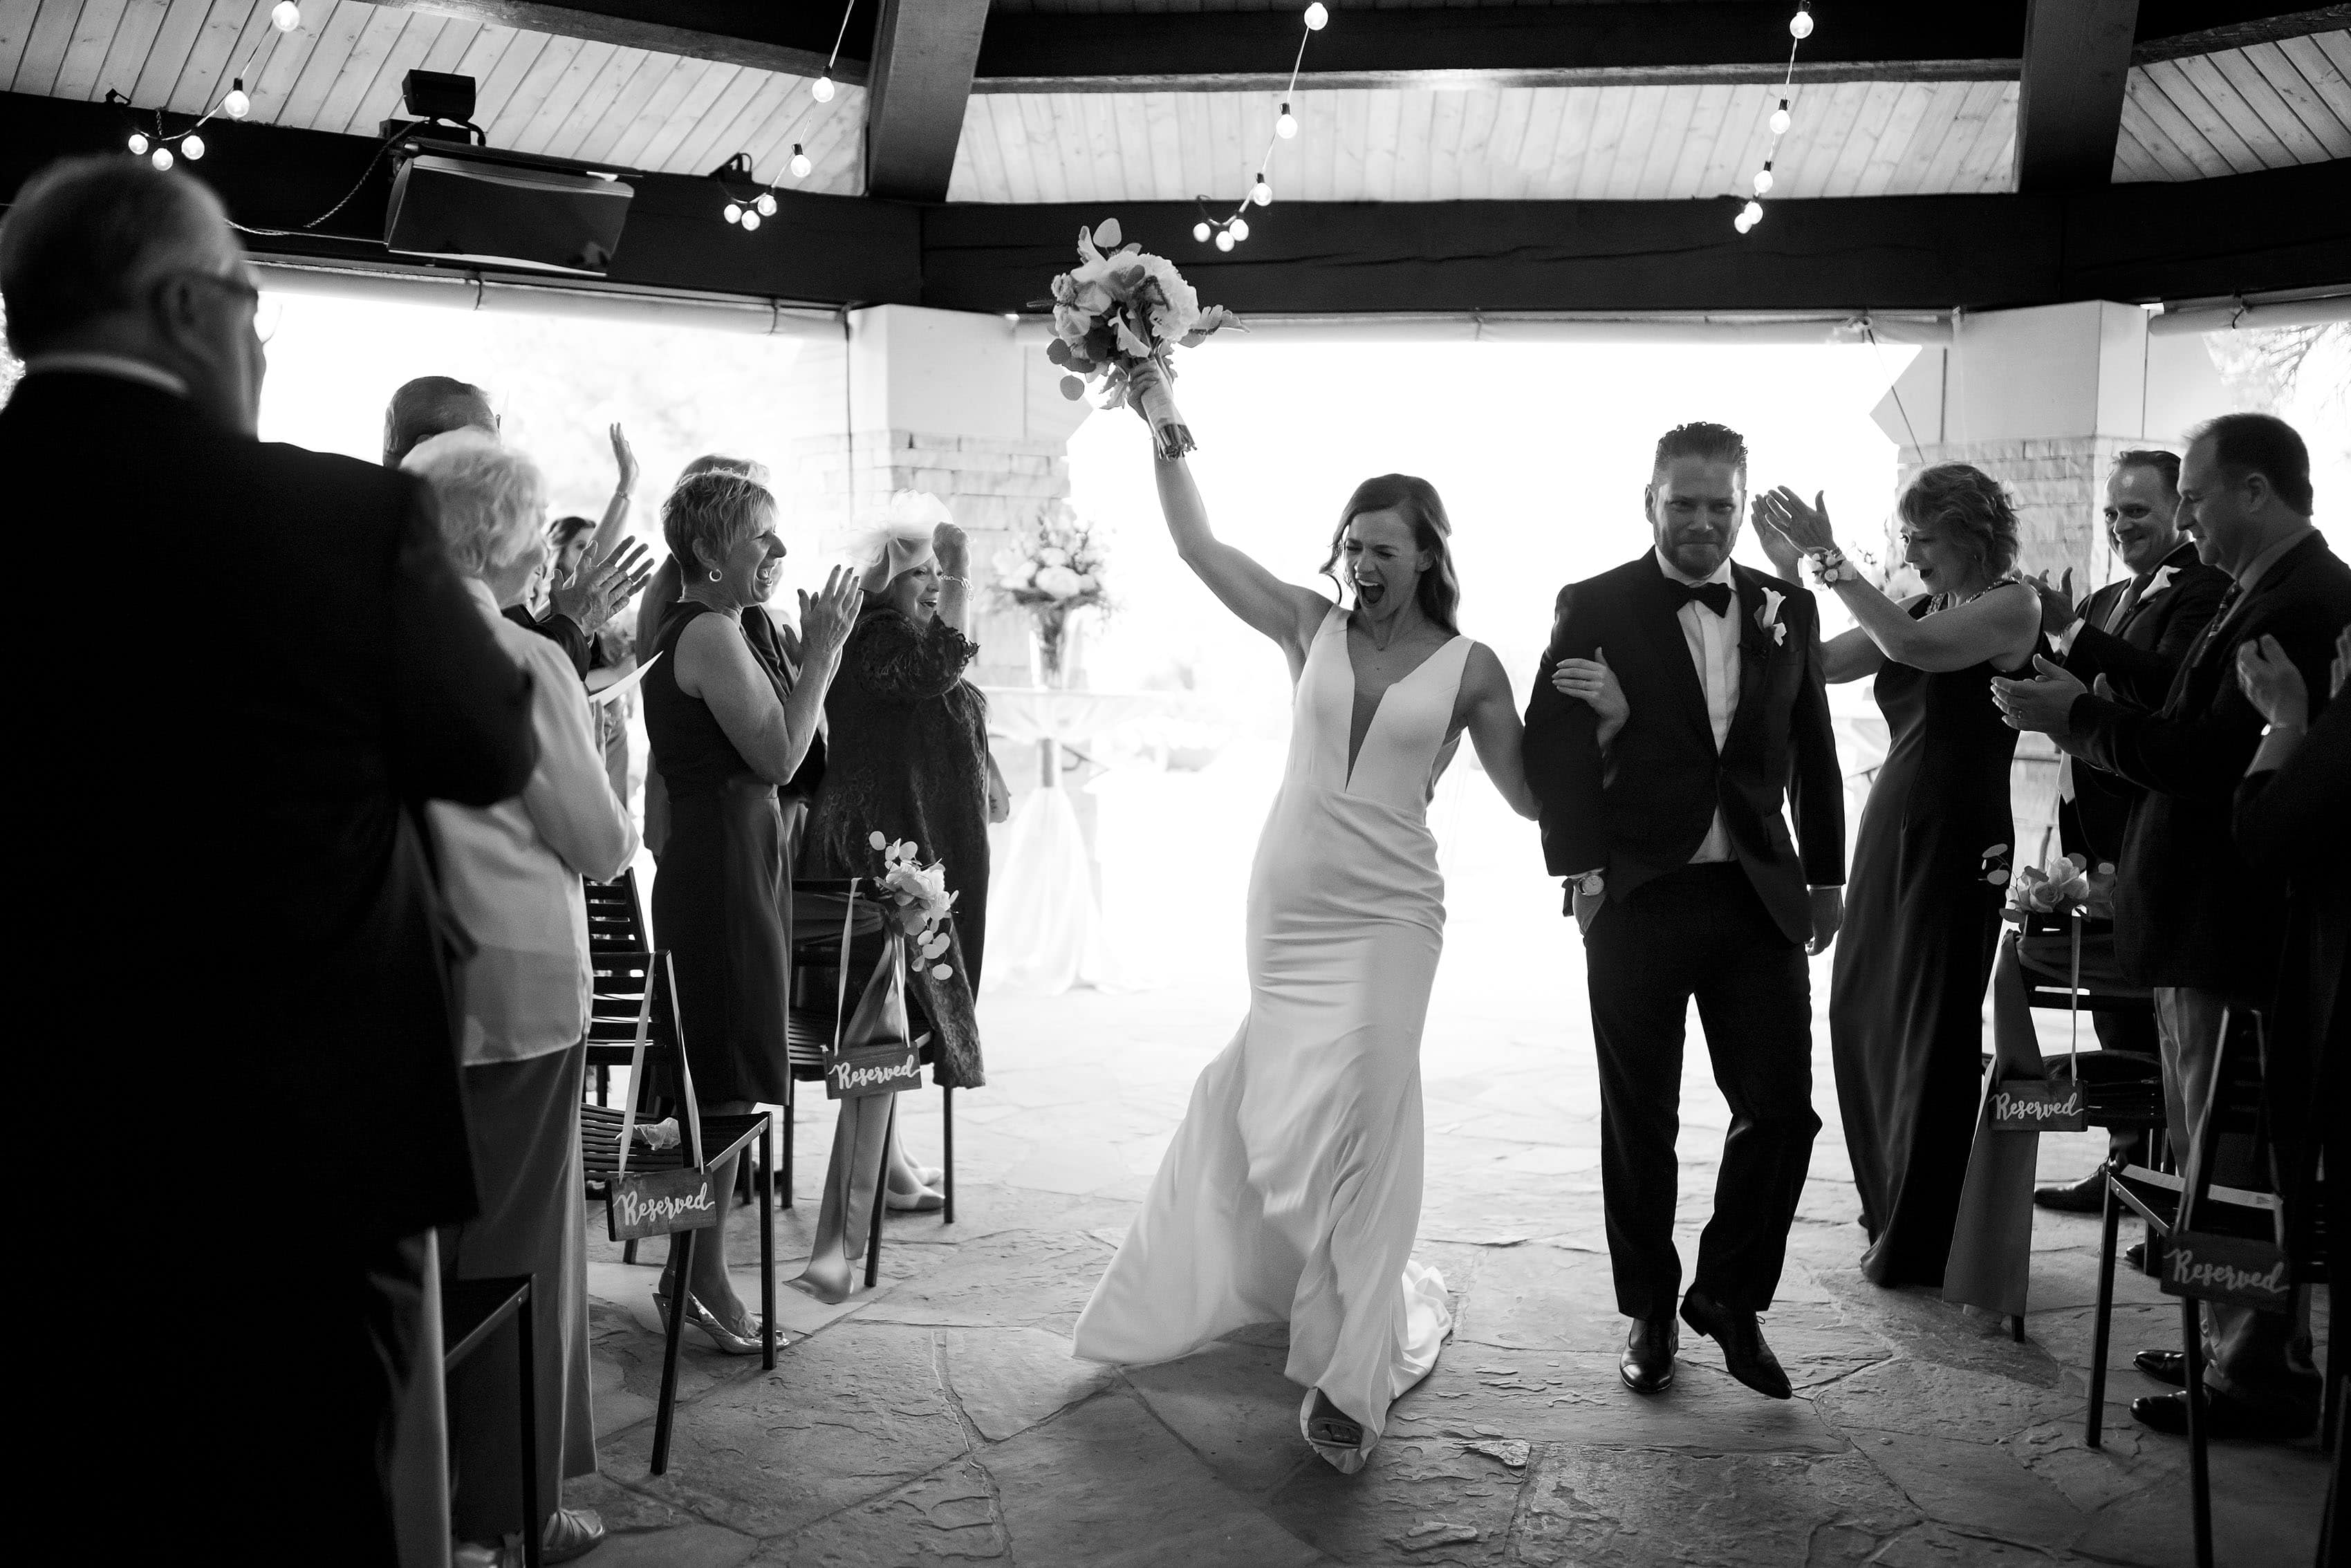 The bride and groom cheer after being announced as husband and wife during their Sanctuary wedding